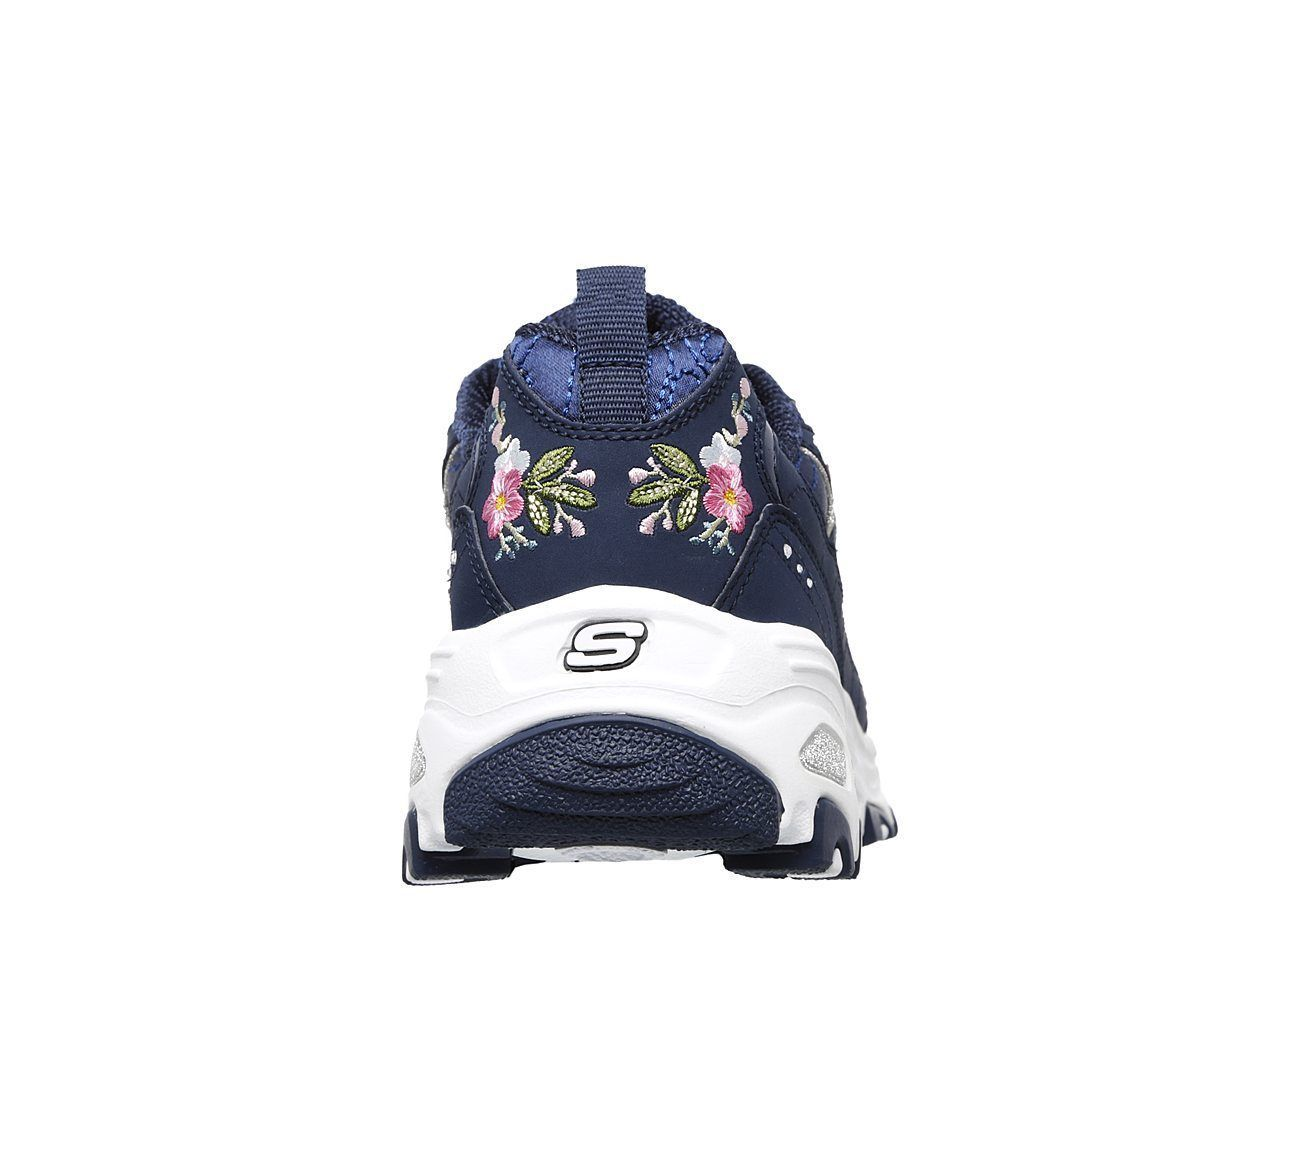 11977 Navy Dlites Skechers Shoes Women Sporty Casual Comfort Memory Foam Floral image 6